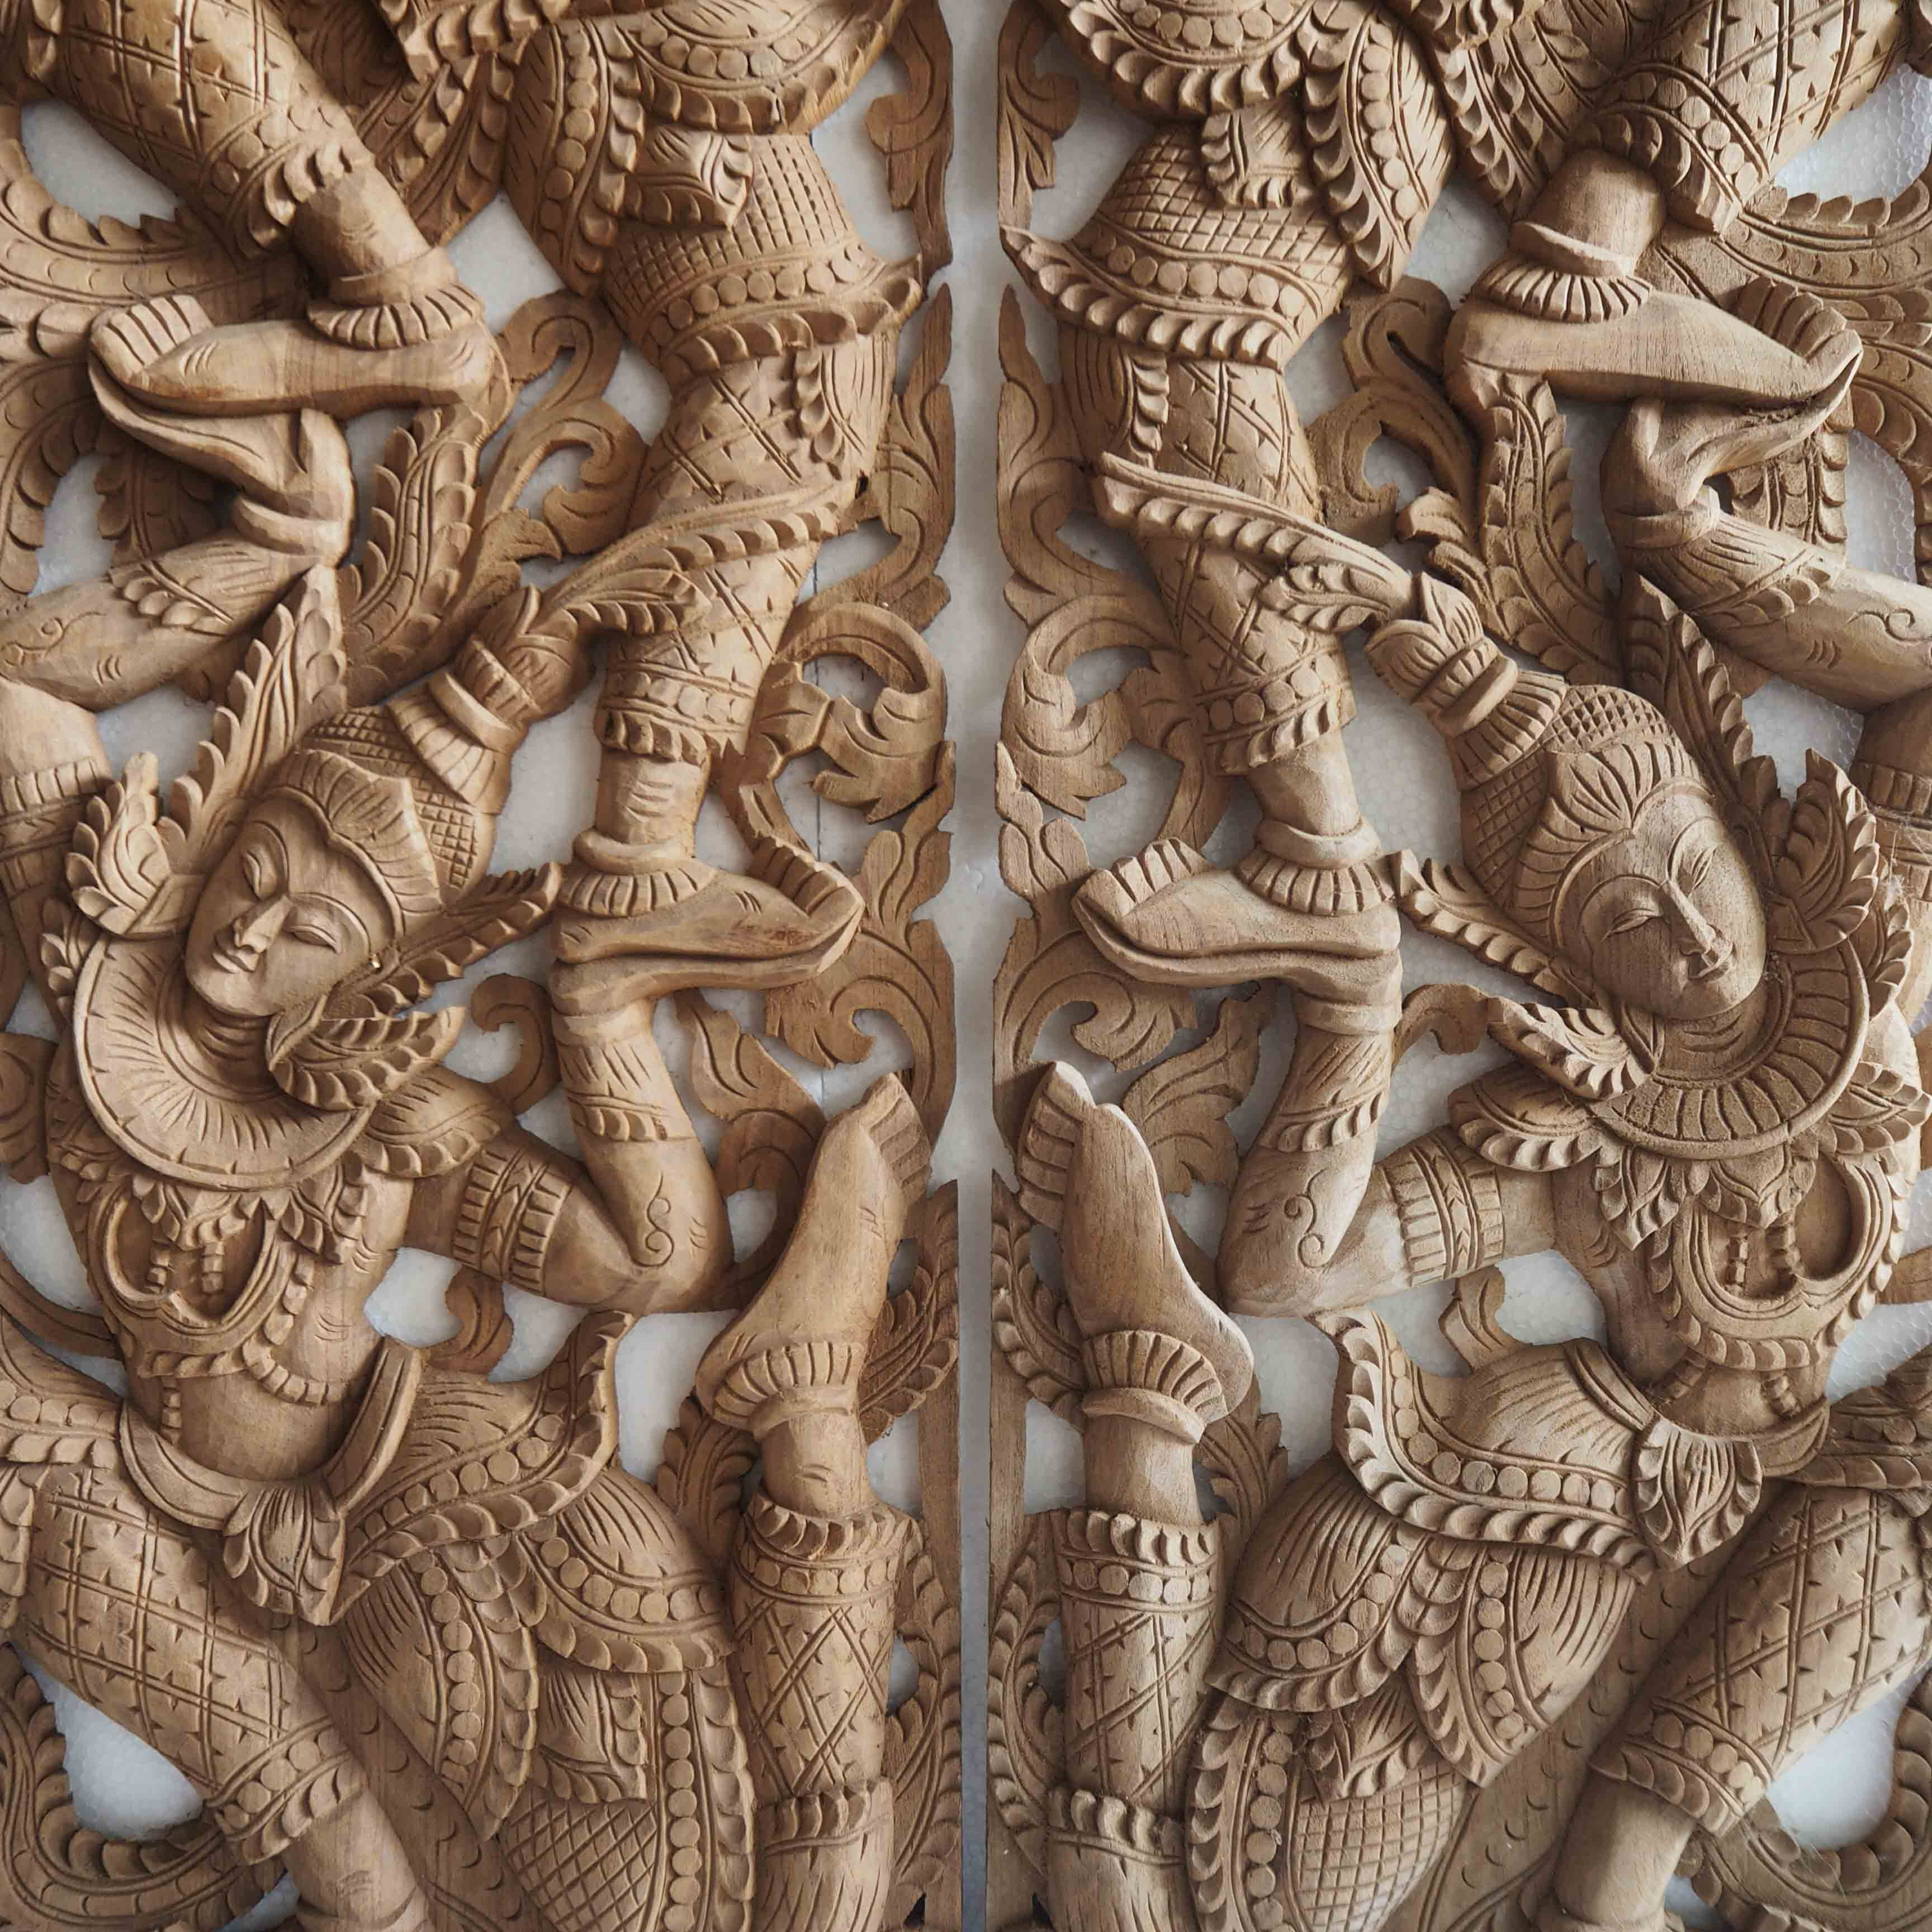 Most Current Pair Of Wooden Wall Art Panel From Thailand – Siam Sawadee Inside Wooden Wall Art Panels (View 13 of 15)